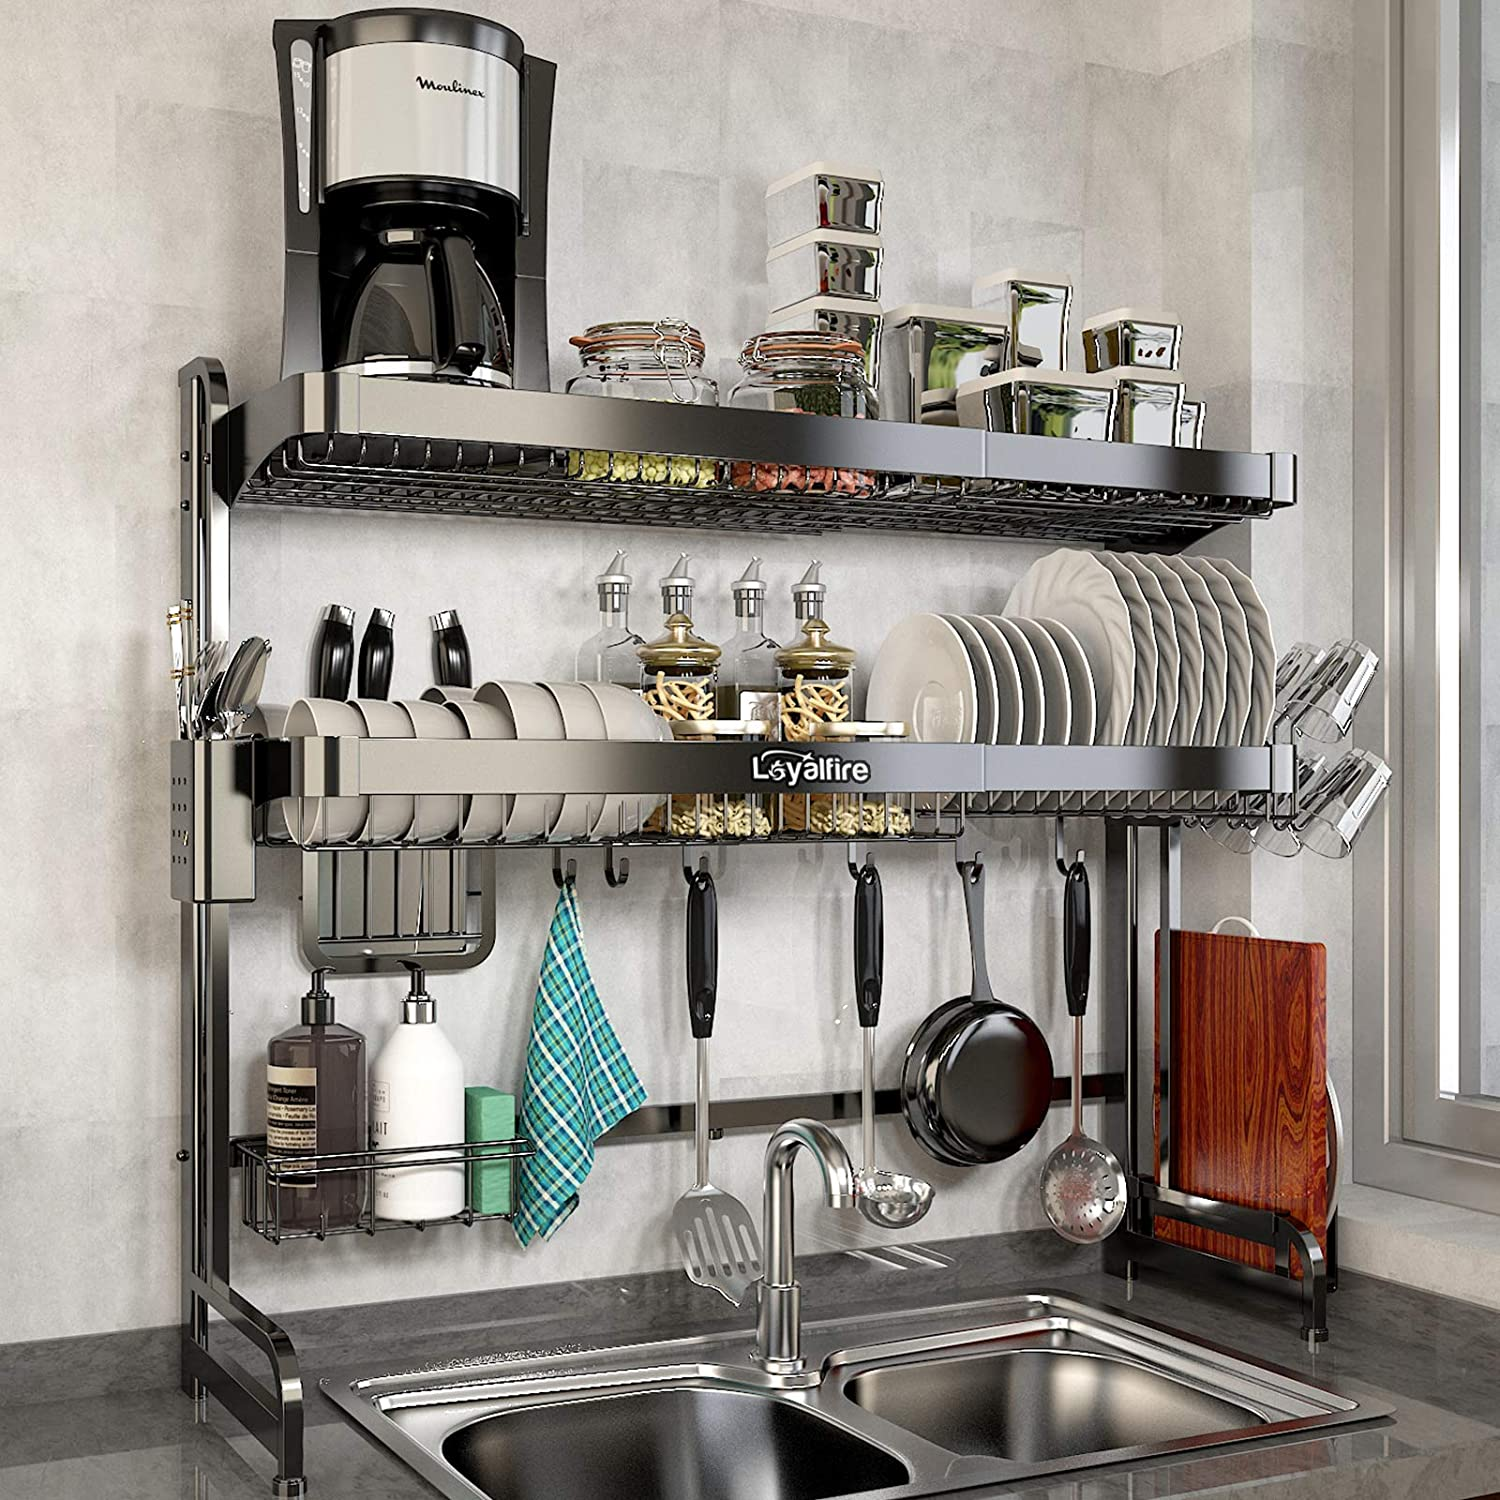 Over Sink Dish Drying Rack Loyalfire 2 Tier Full Stainless Steel Large Storage Adjustable Kitchen Dish Rack 24 41 37 6 Expandable Dish Drainer Shelf Rack With Utensil Holder Cup Hanging Set